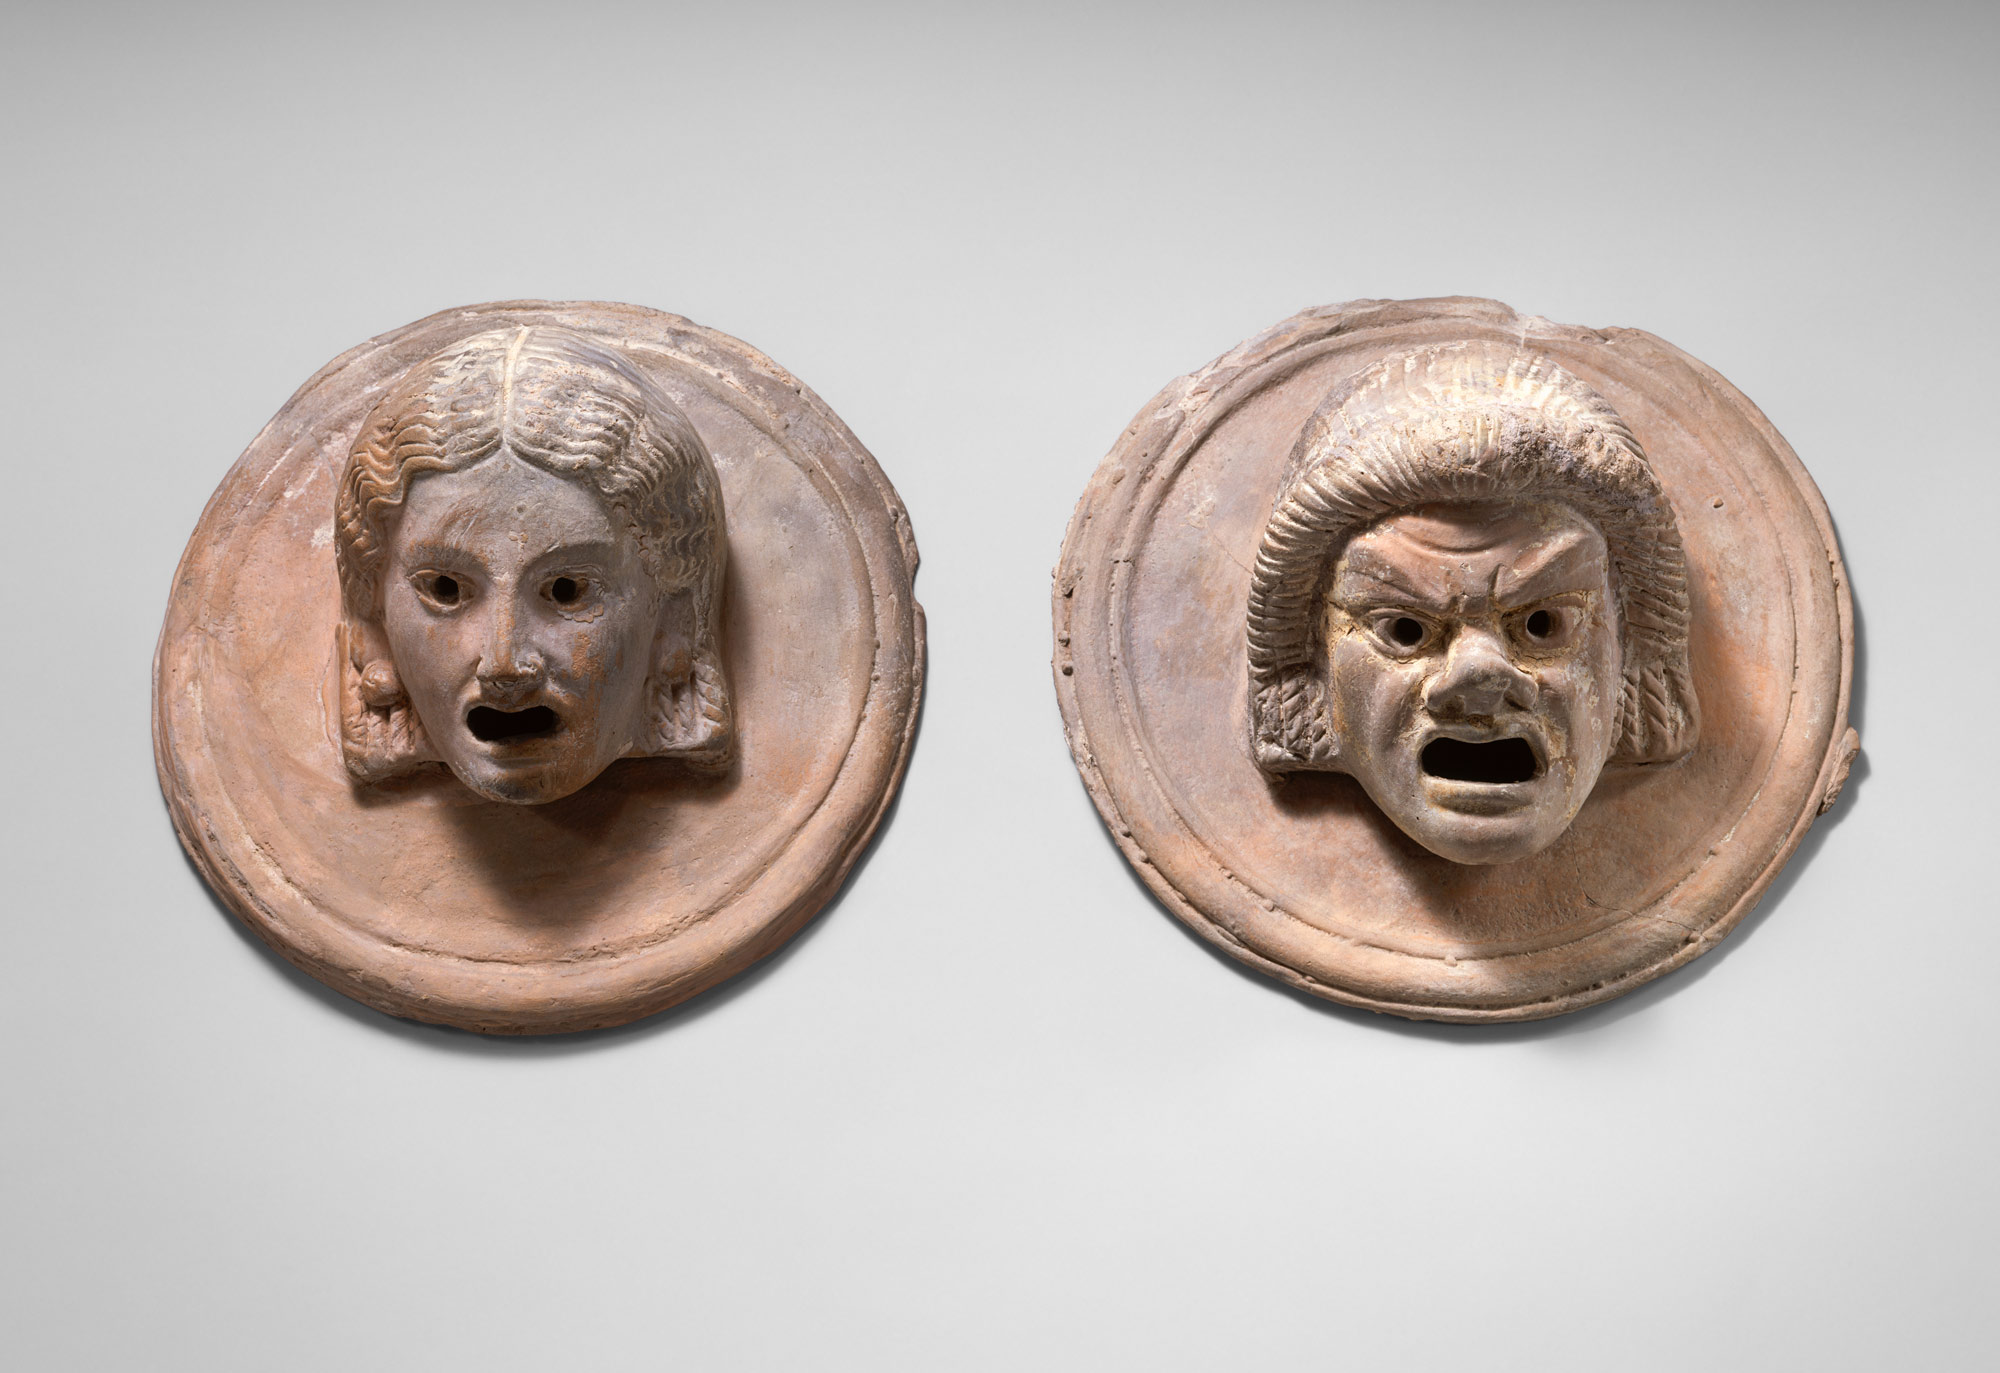 Two roundels with theater masks